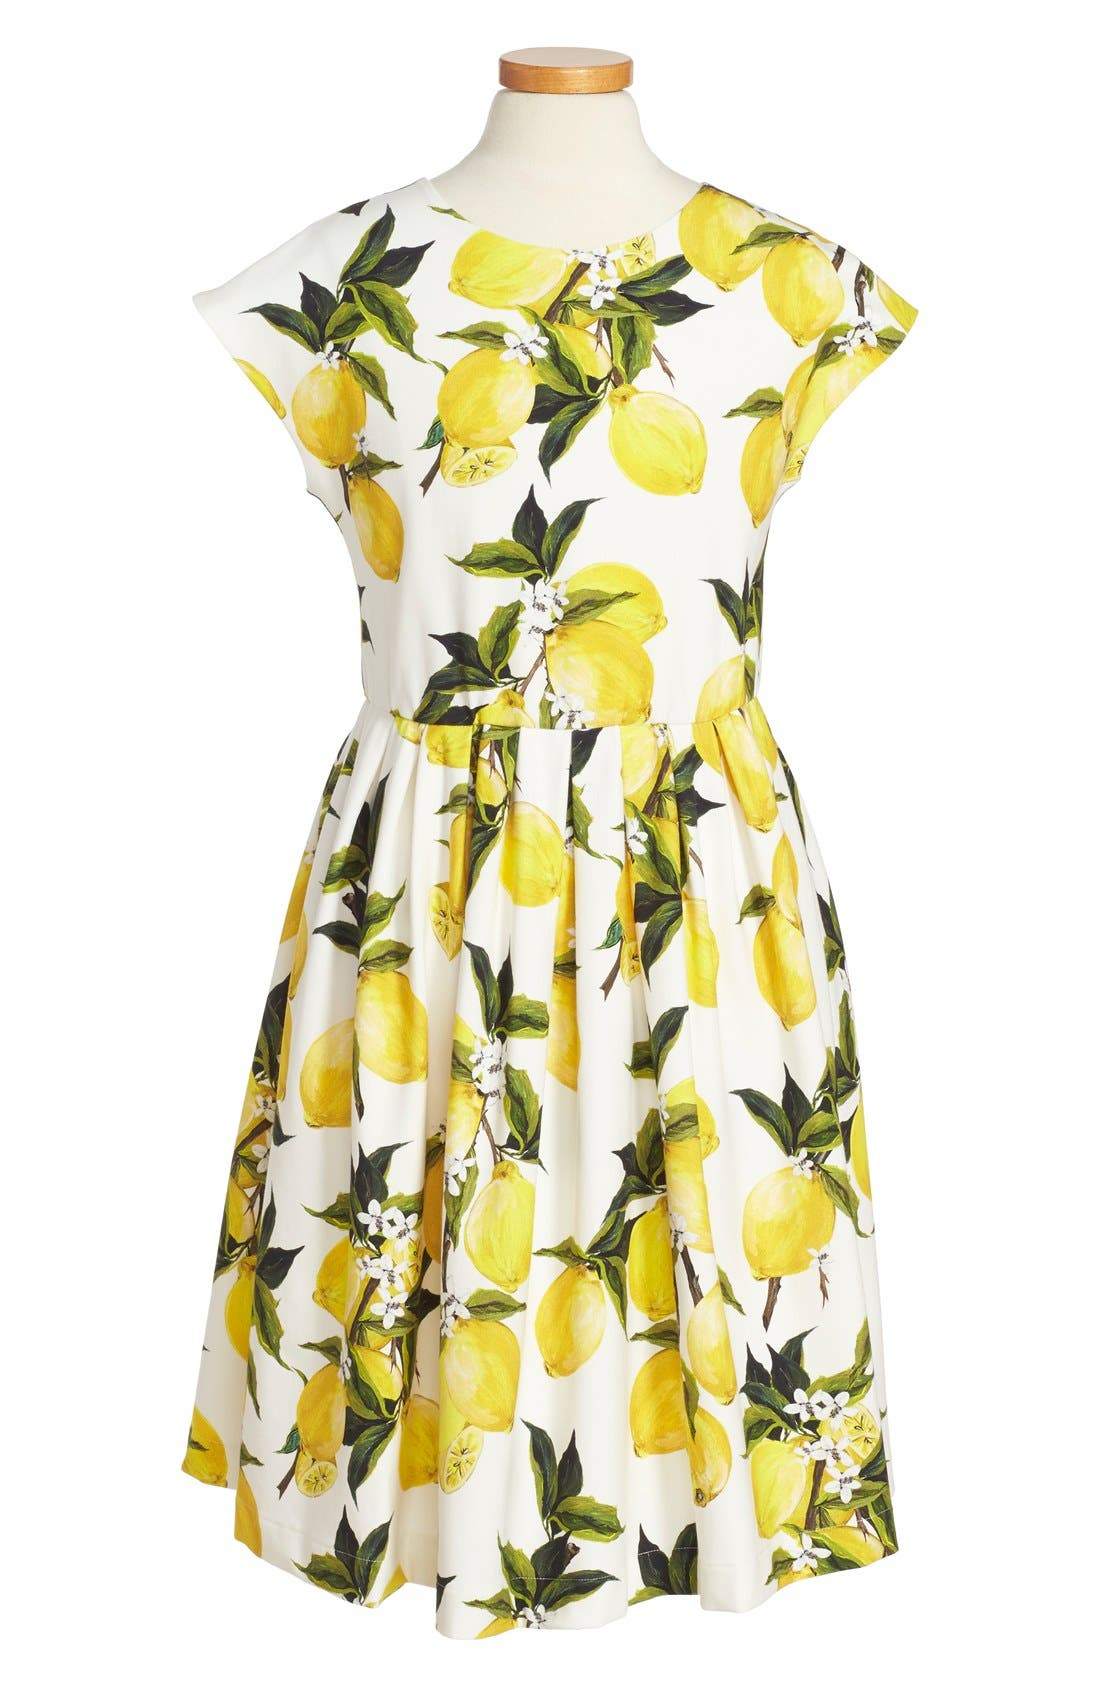 Dolce&Gabbana 'Limoni' Cap Sleeve Dress (Toddler Girls, Little Girls & Big Girls)